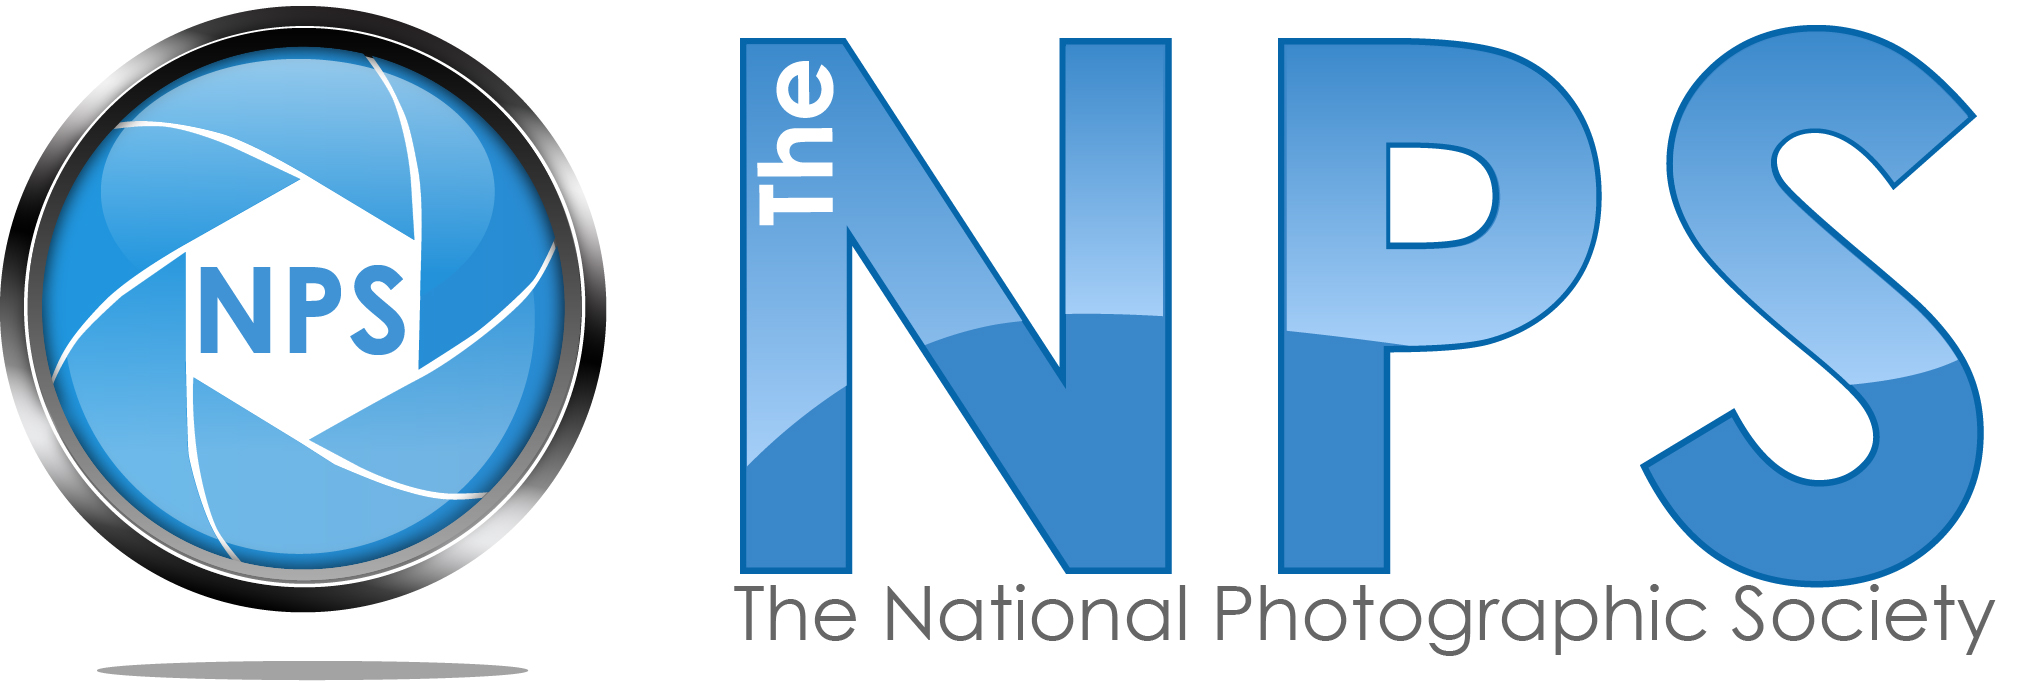 national photographic society